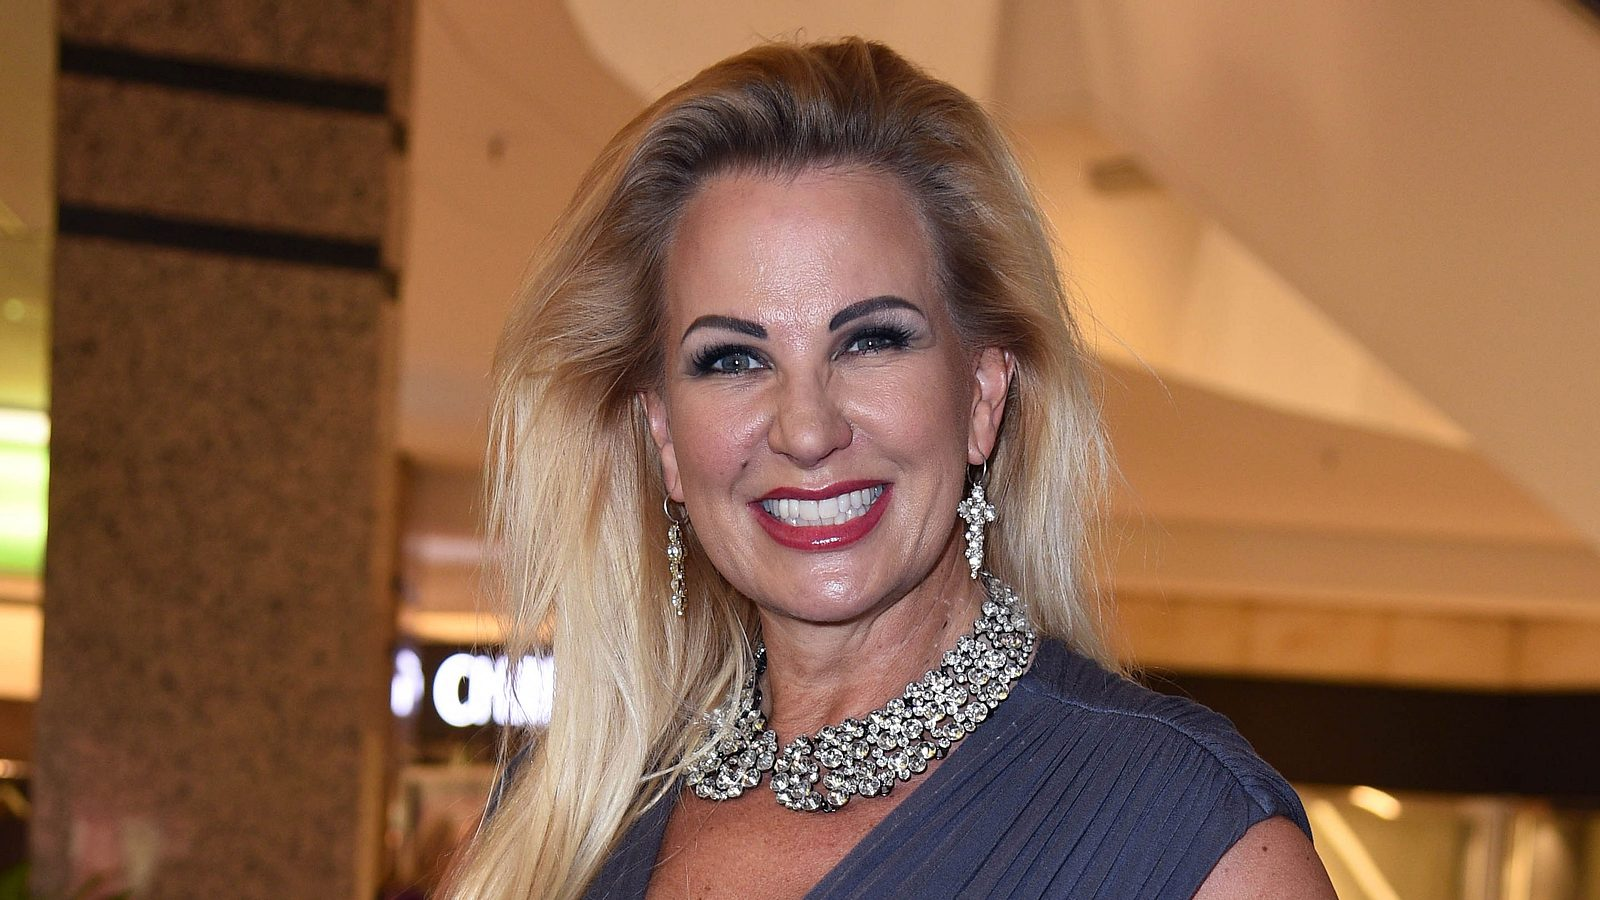 Claudia Norberg Intouch